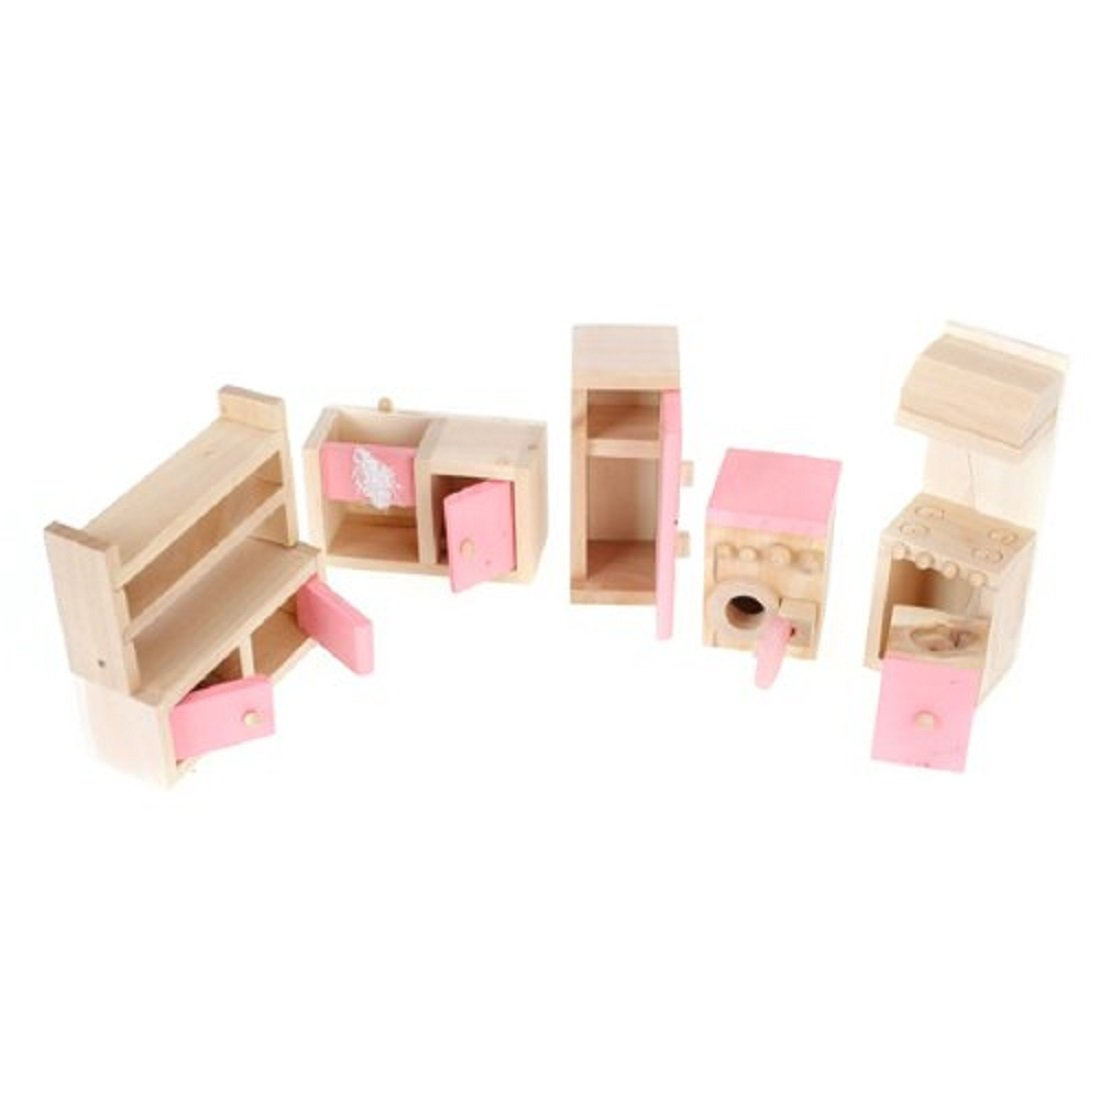 Pink children wooden doll house kitchen furniture kids room s Dollhouse wooden furniture